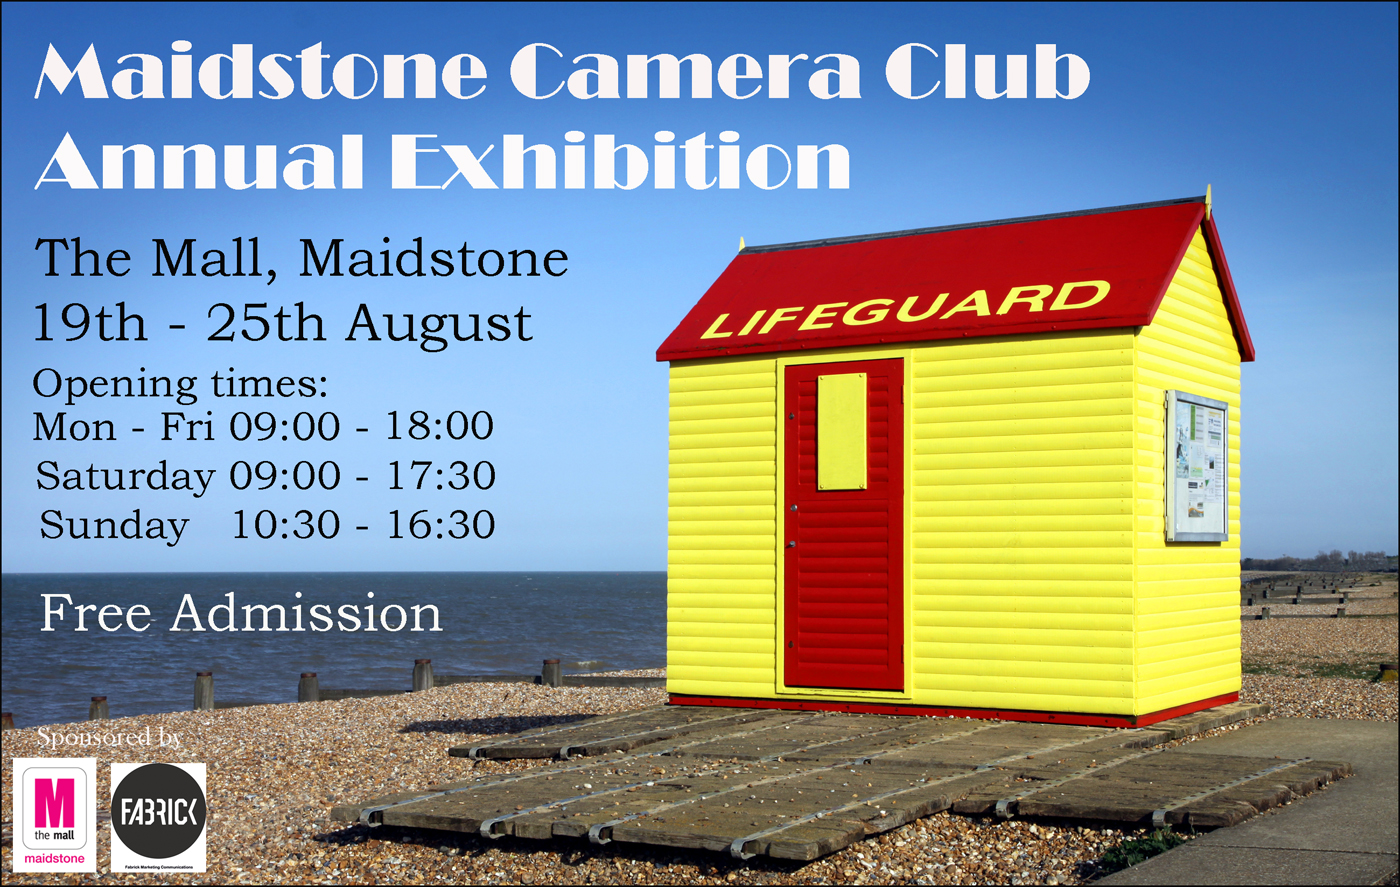 Annual Exhibition 2019 Poster